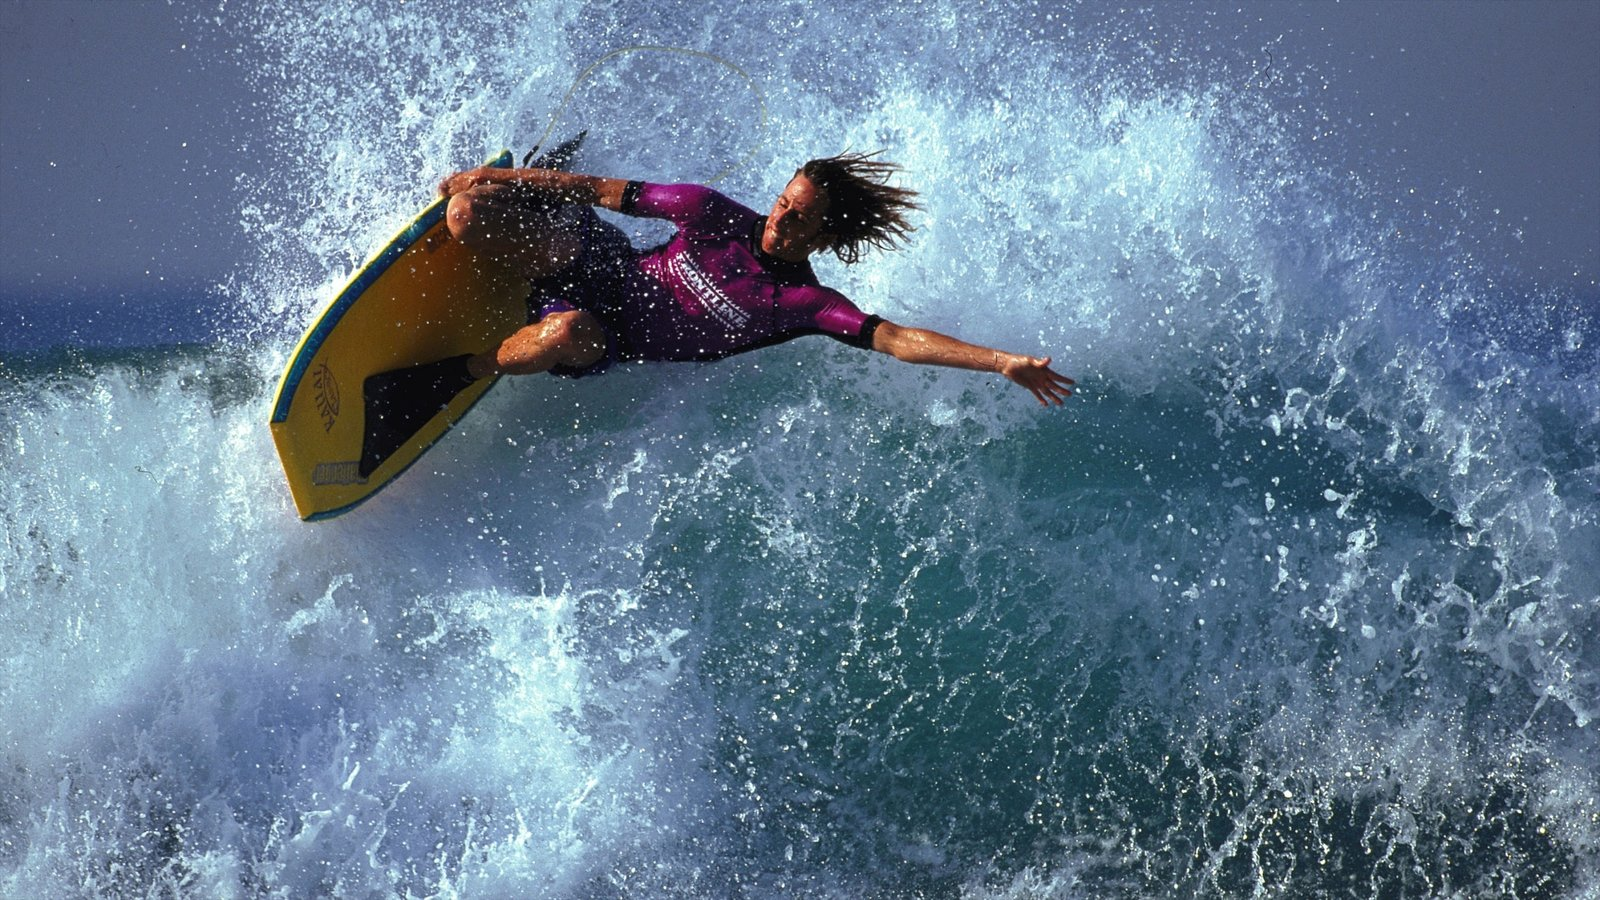 Durban which includes a sporting event, surfing and surf